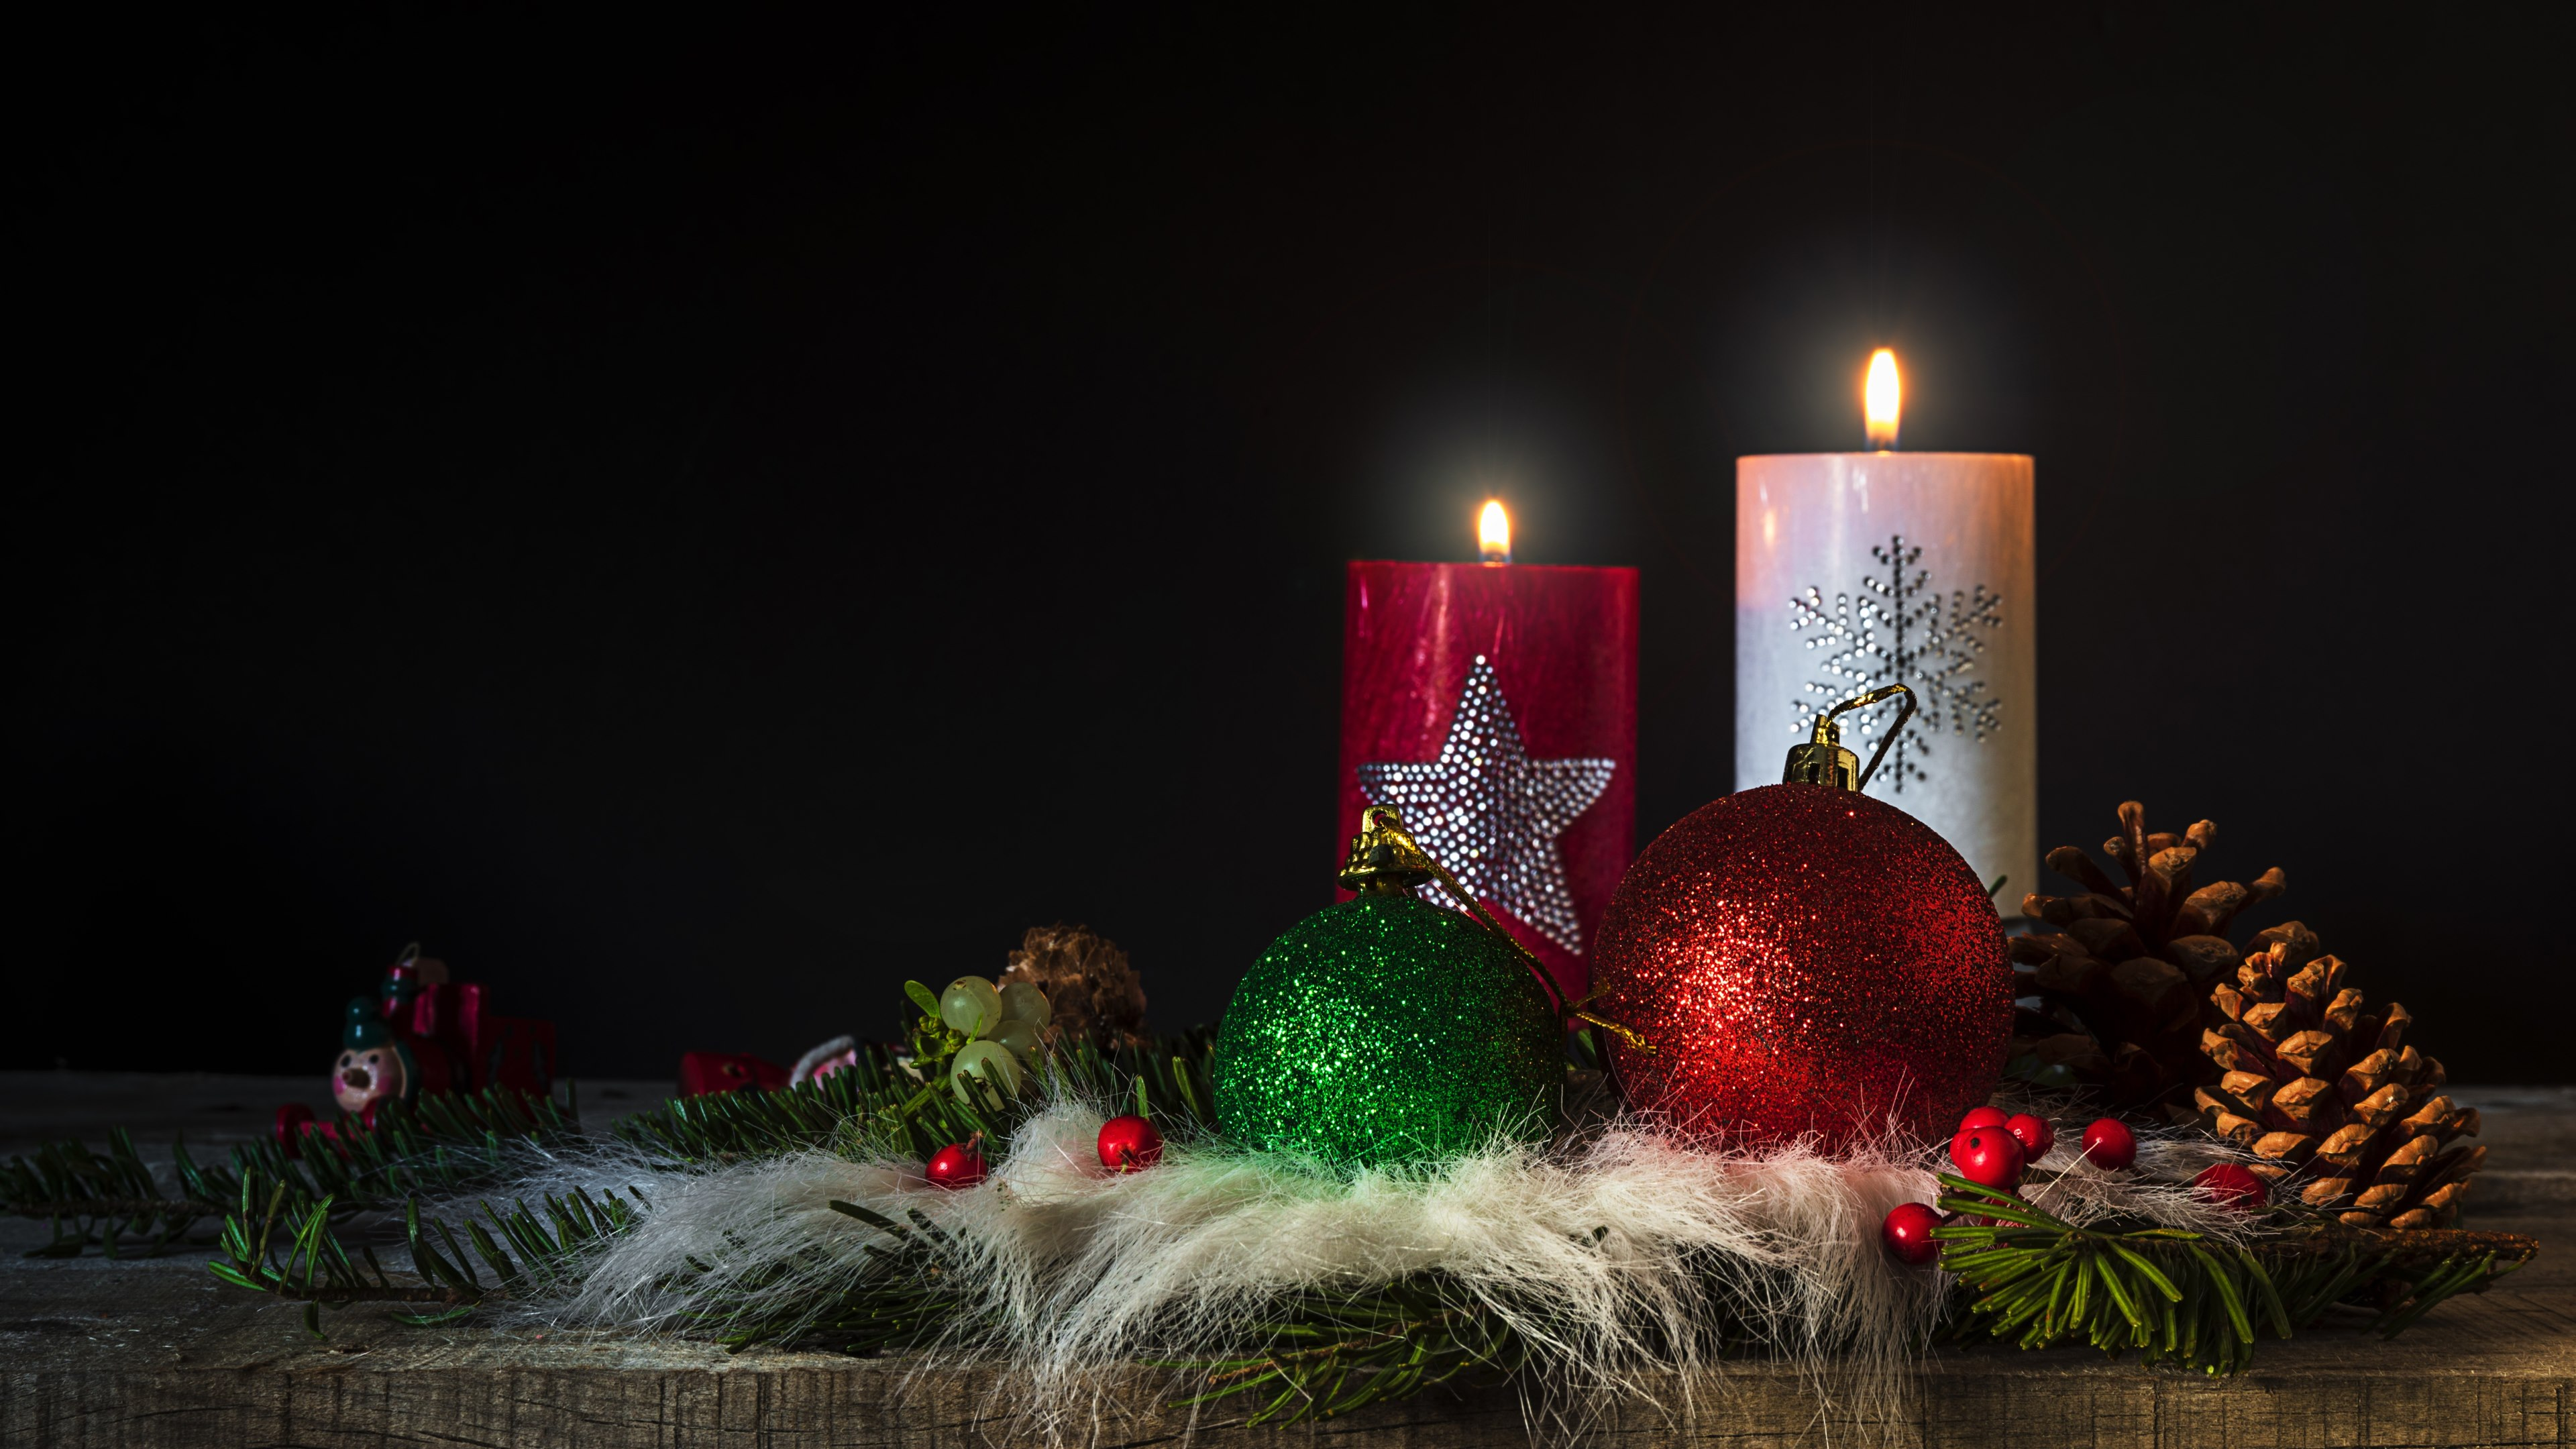 Candles Hd Wallpapers Candle Backgrounds And Images